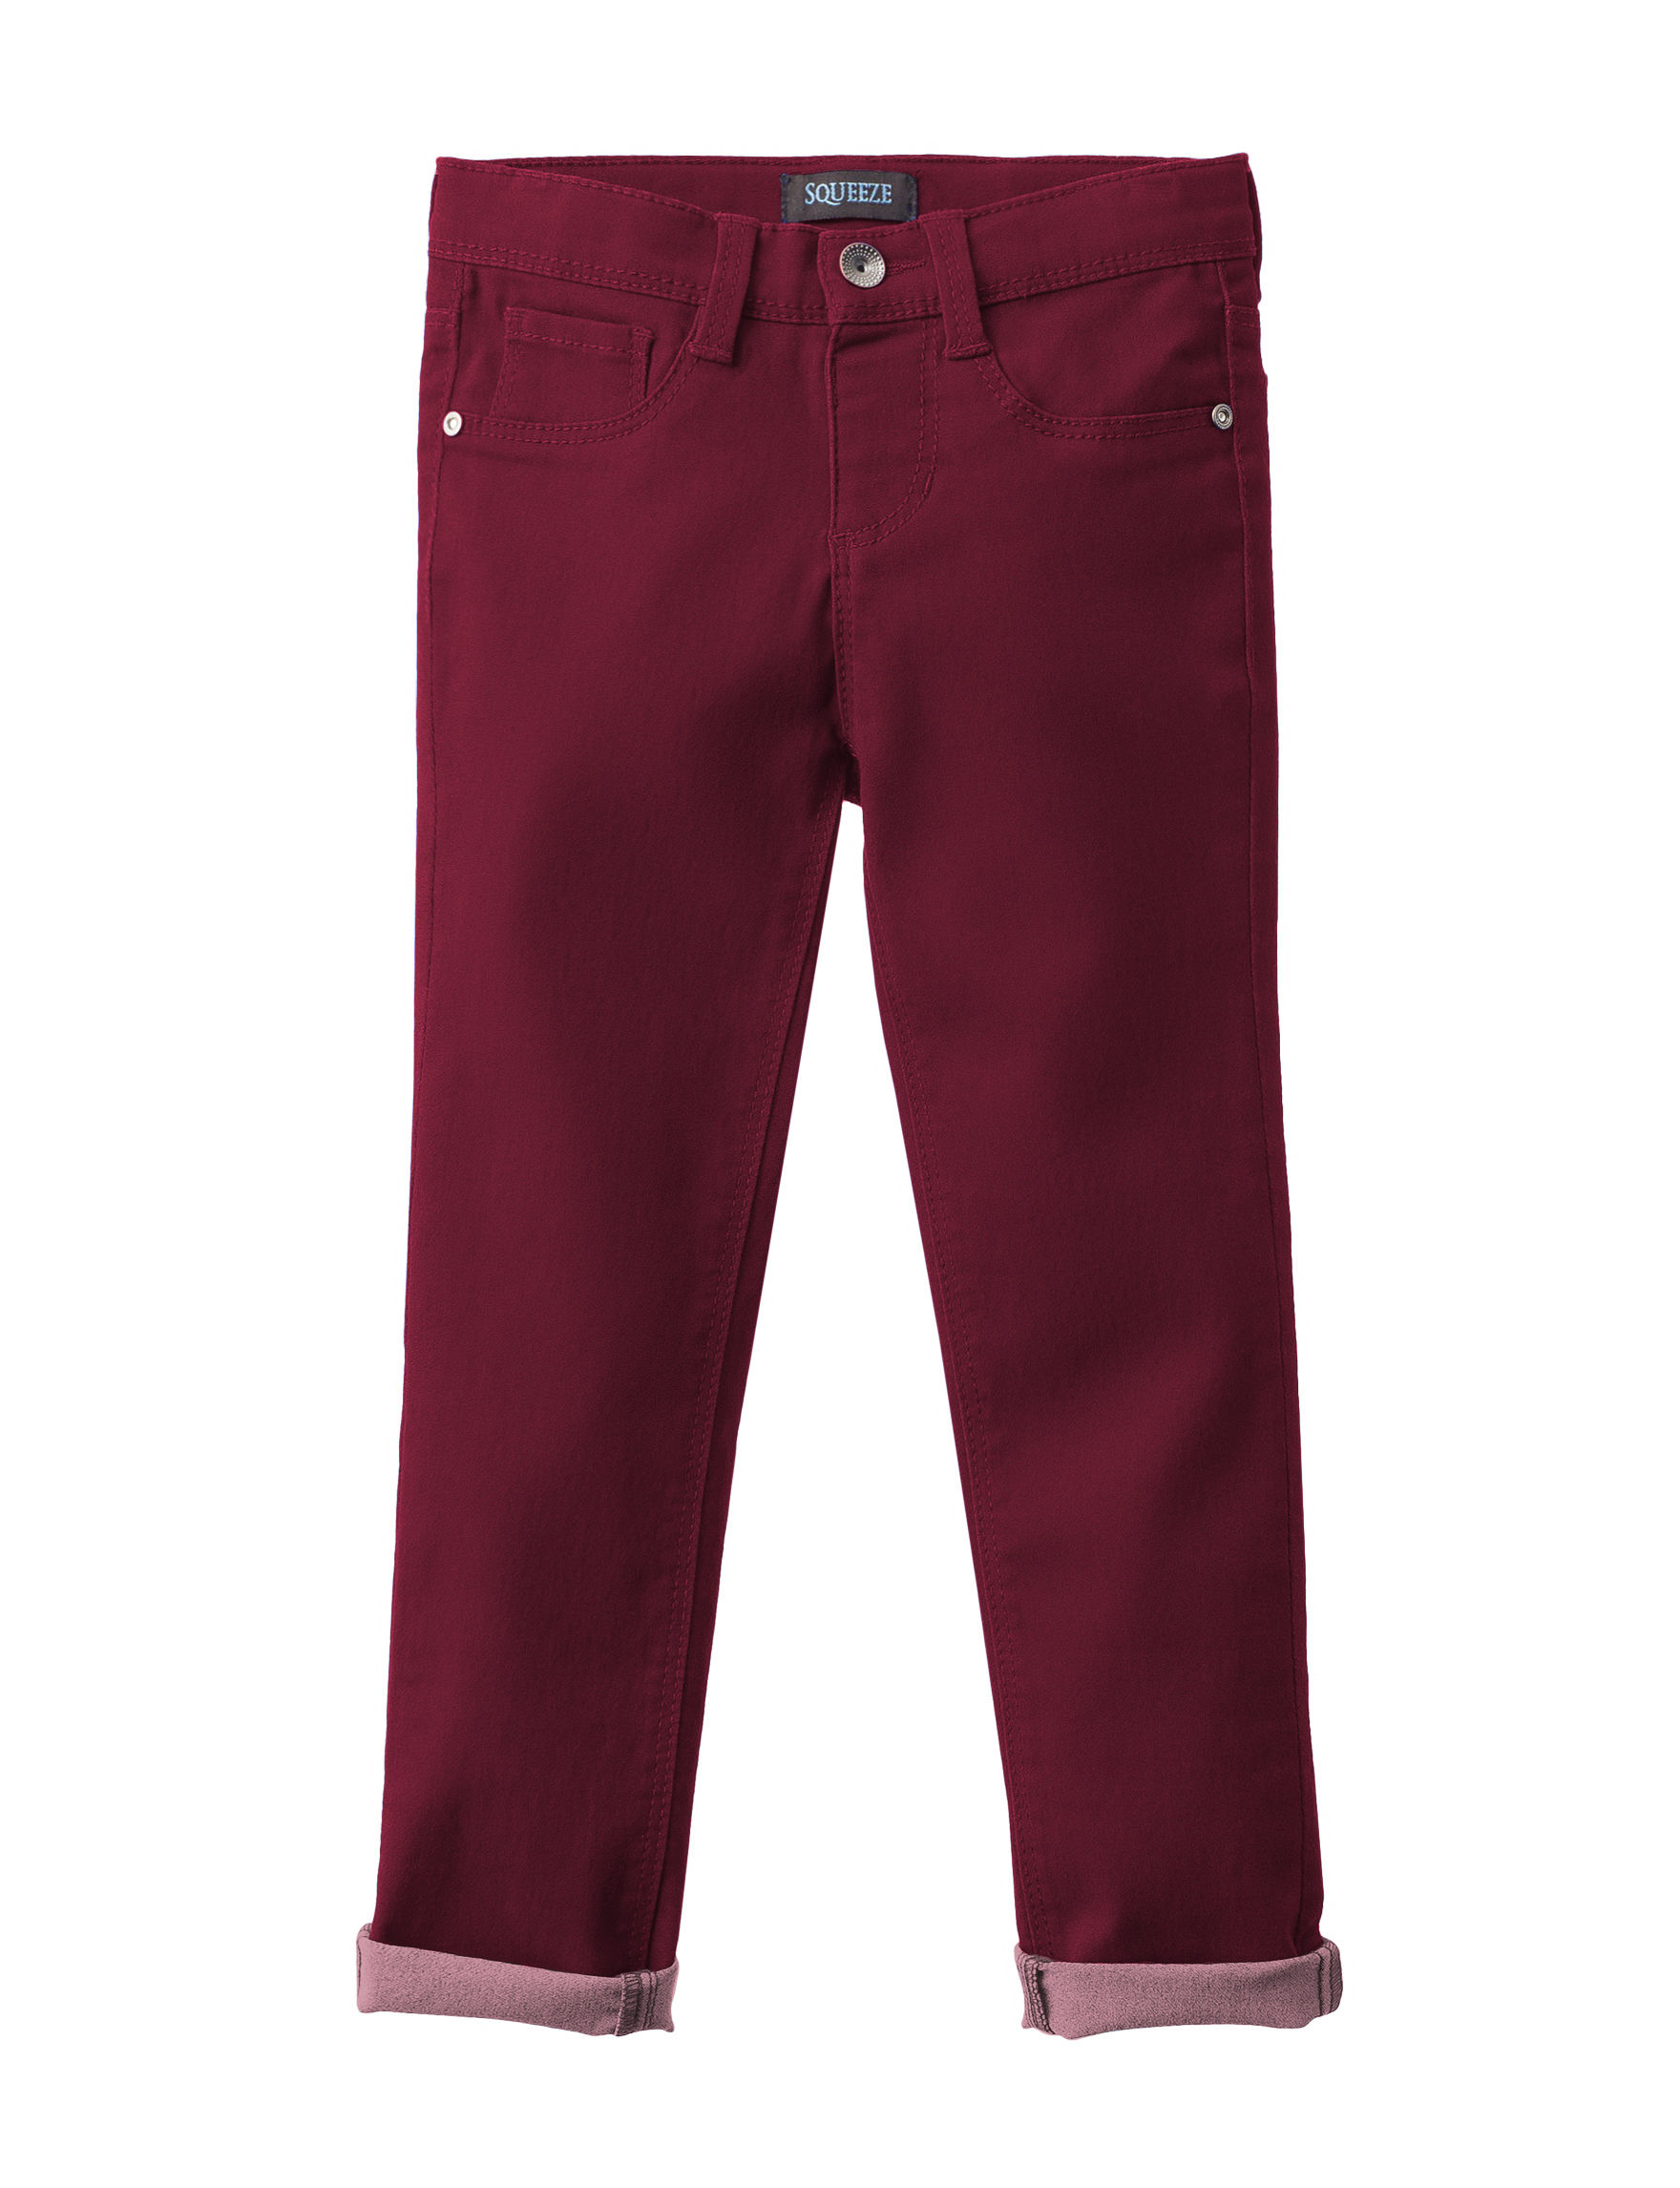 Squeeze Burgundy Soft Pants Stretch